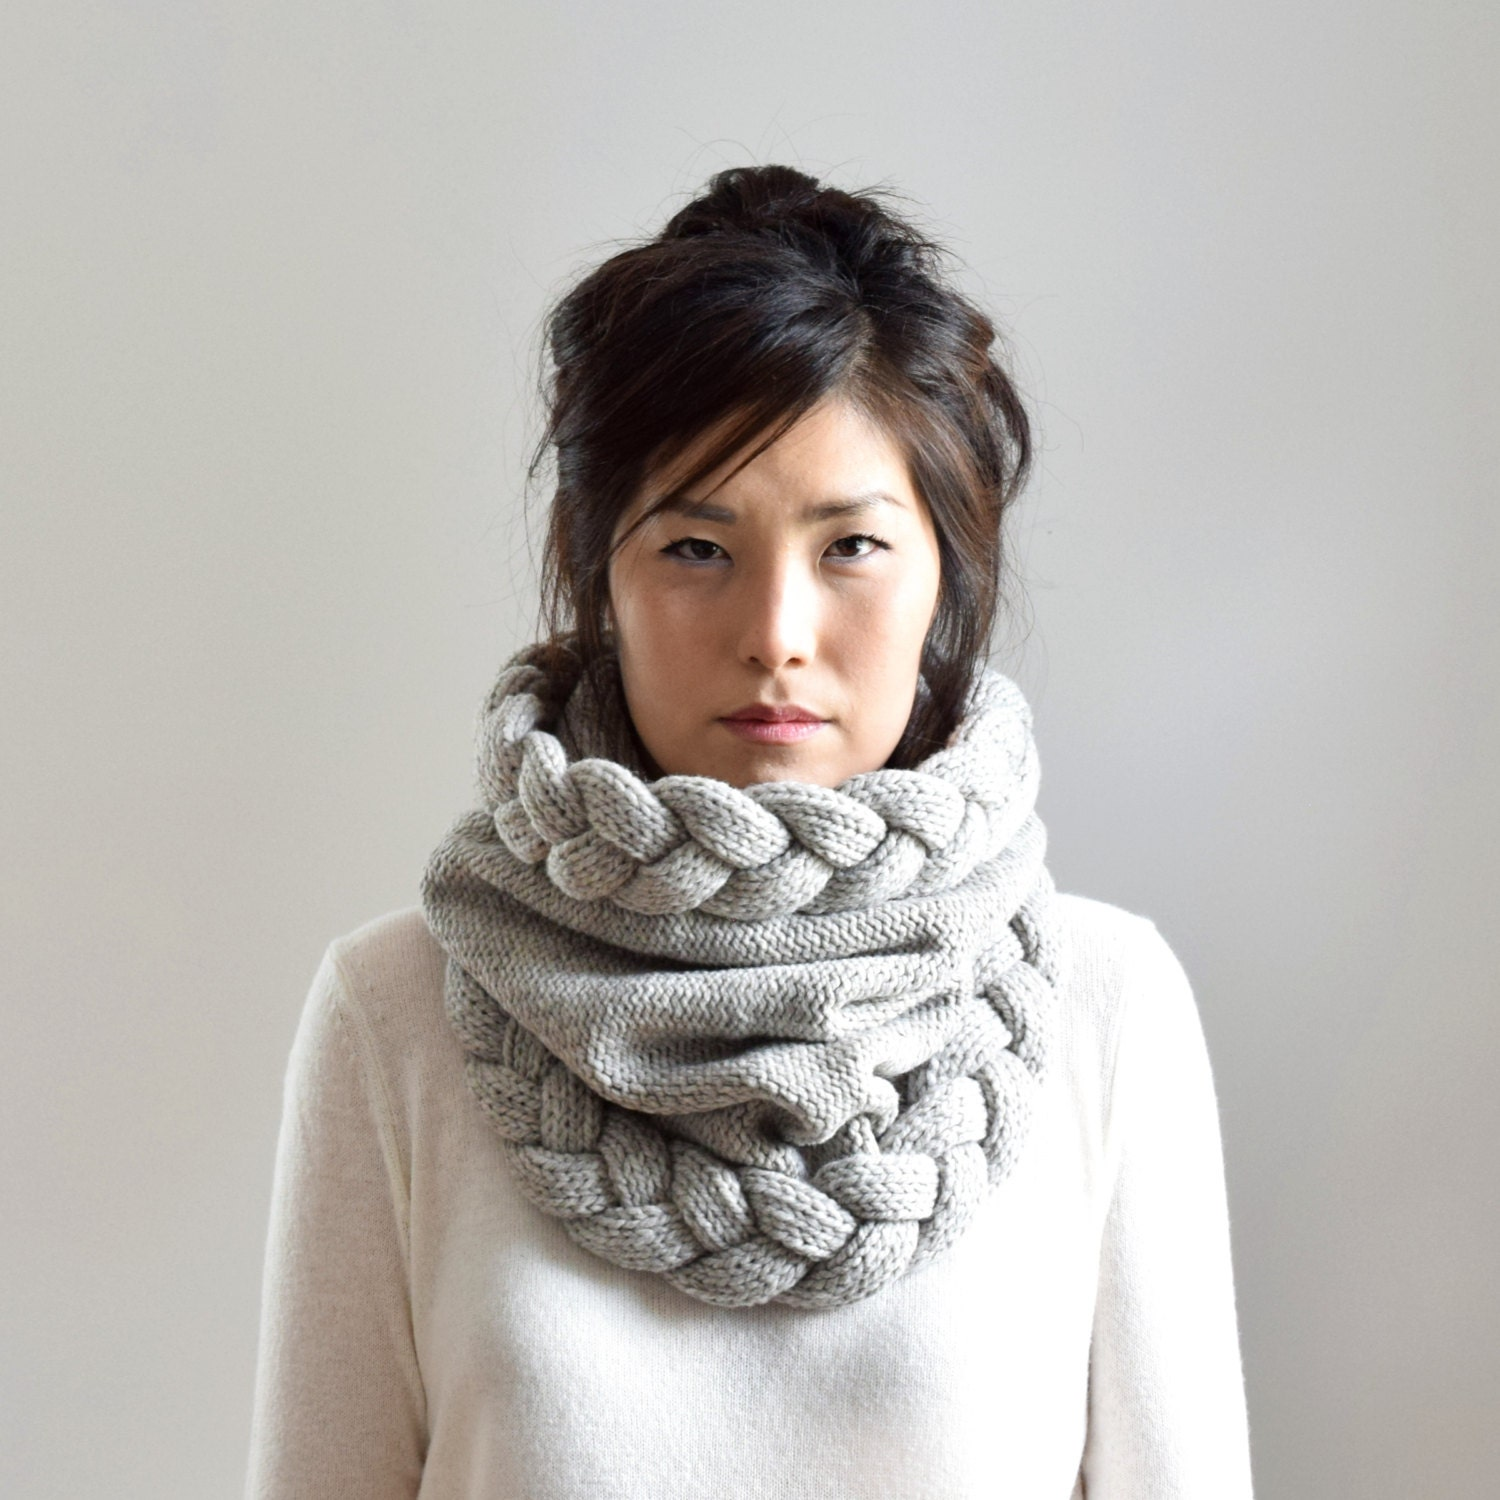 The Through Thick and Thin Scarf is the delicately light knitted scarf great for the warmer months. Using primarily garter stitch knitting, you only need to know how to knit in short rows to successfully complete this easy knit scarf pattern.